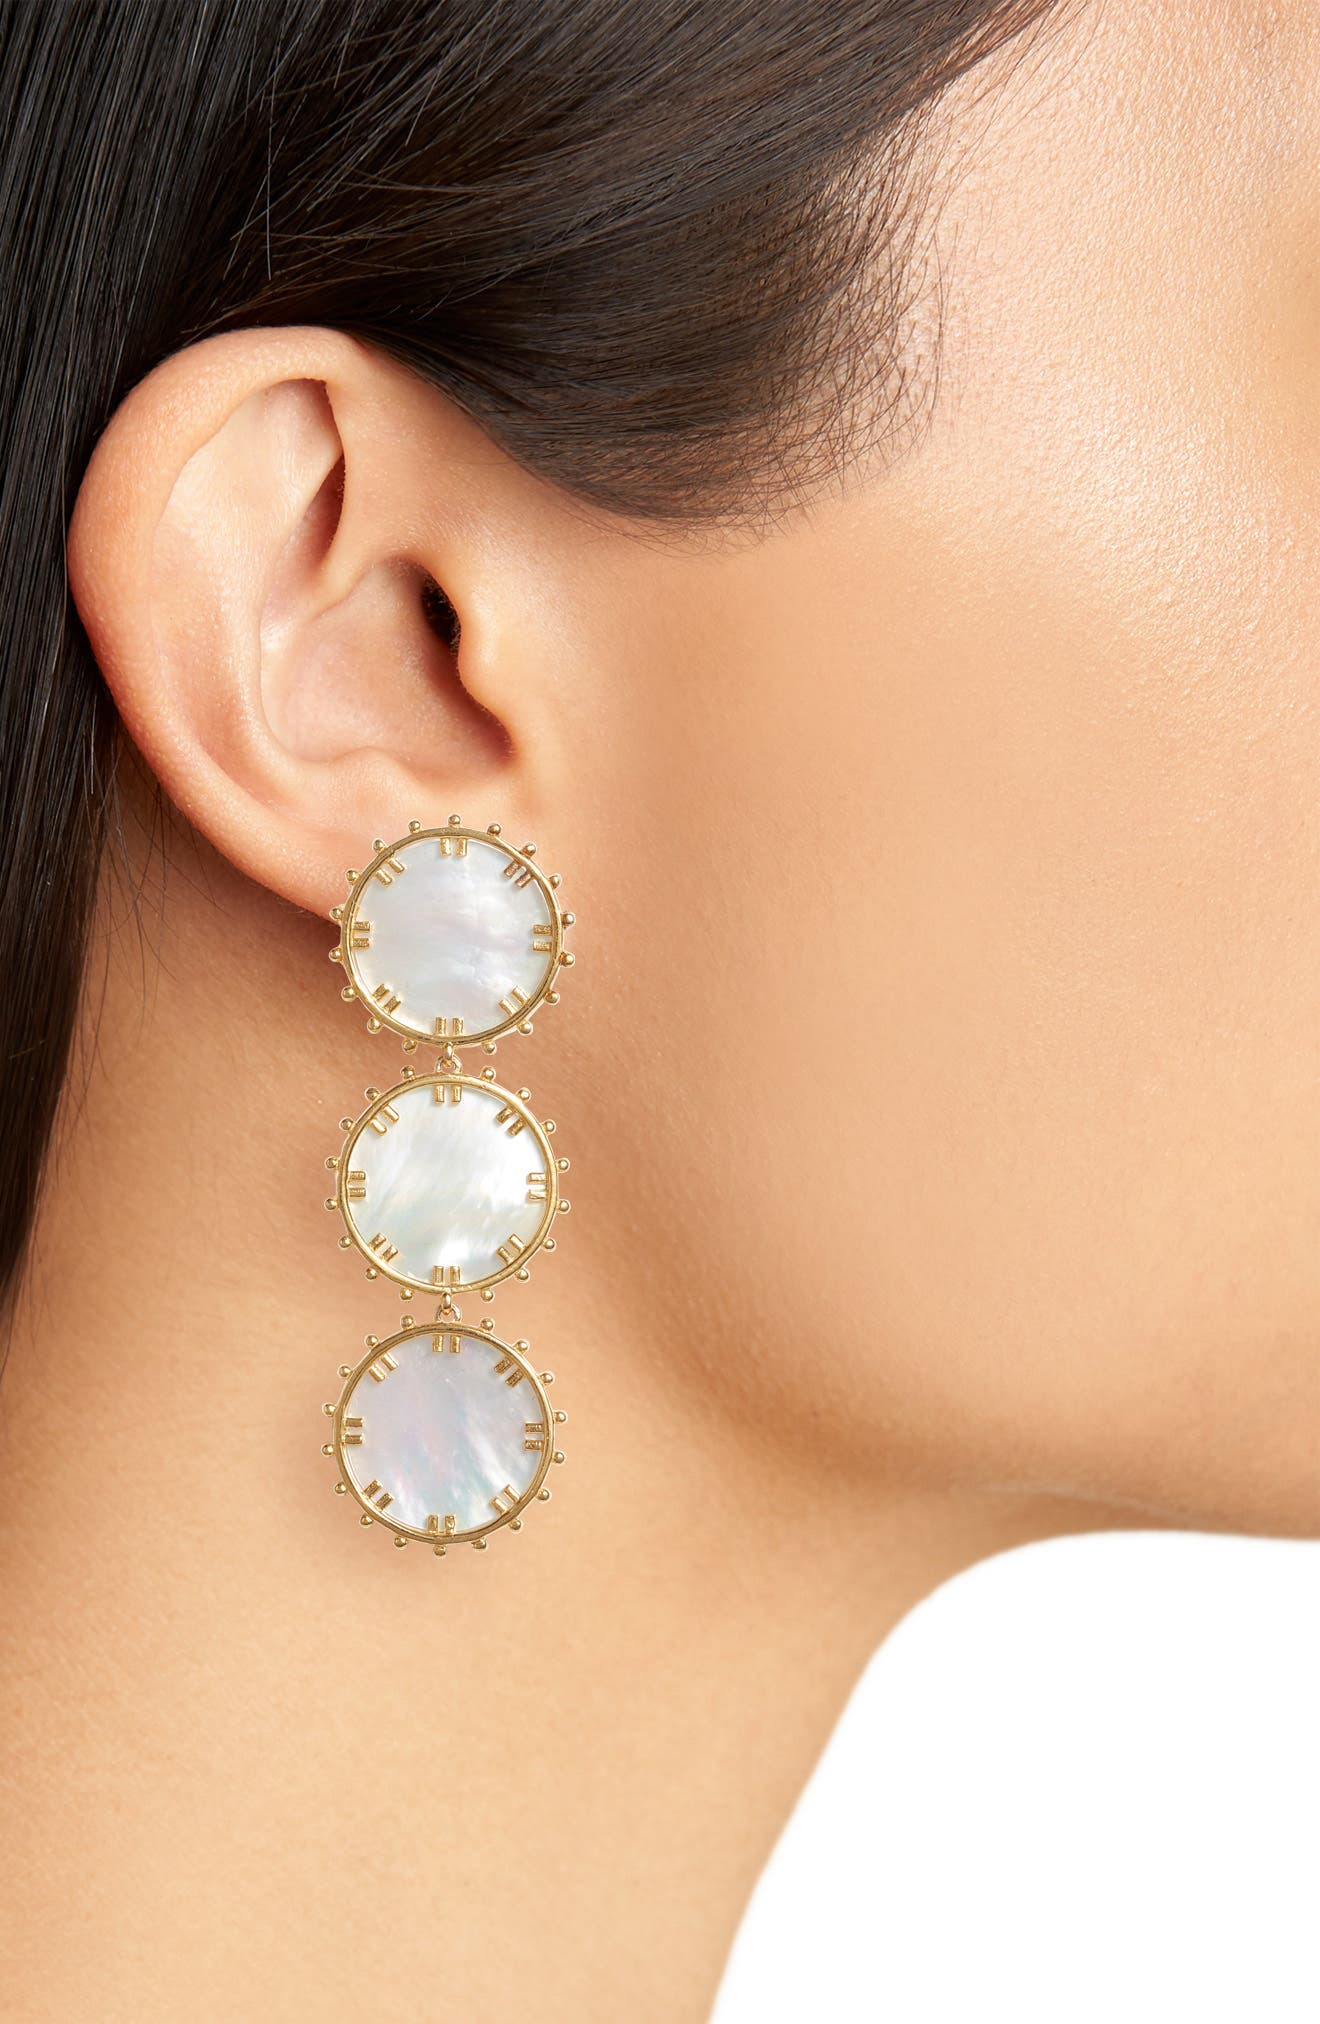 Manou Mother-of-Pearl Drop Earrings,                             Alternate thumbnail 2, color,                             100